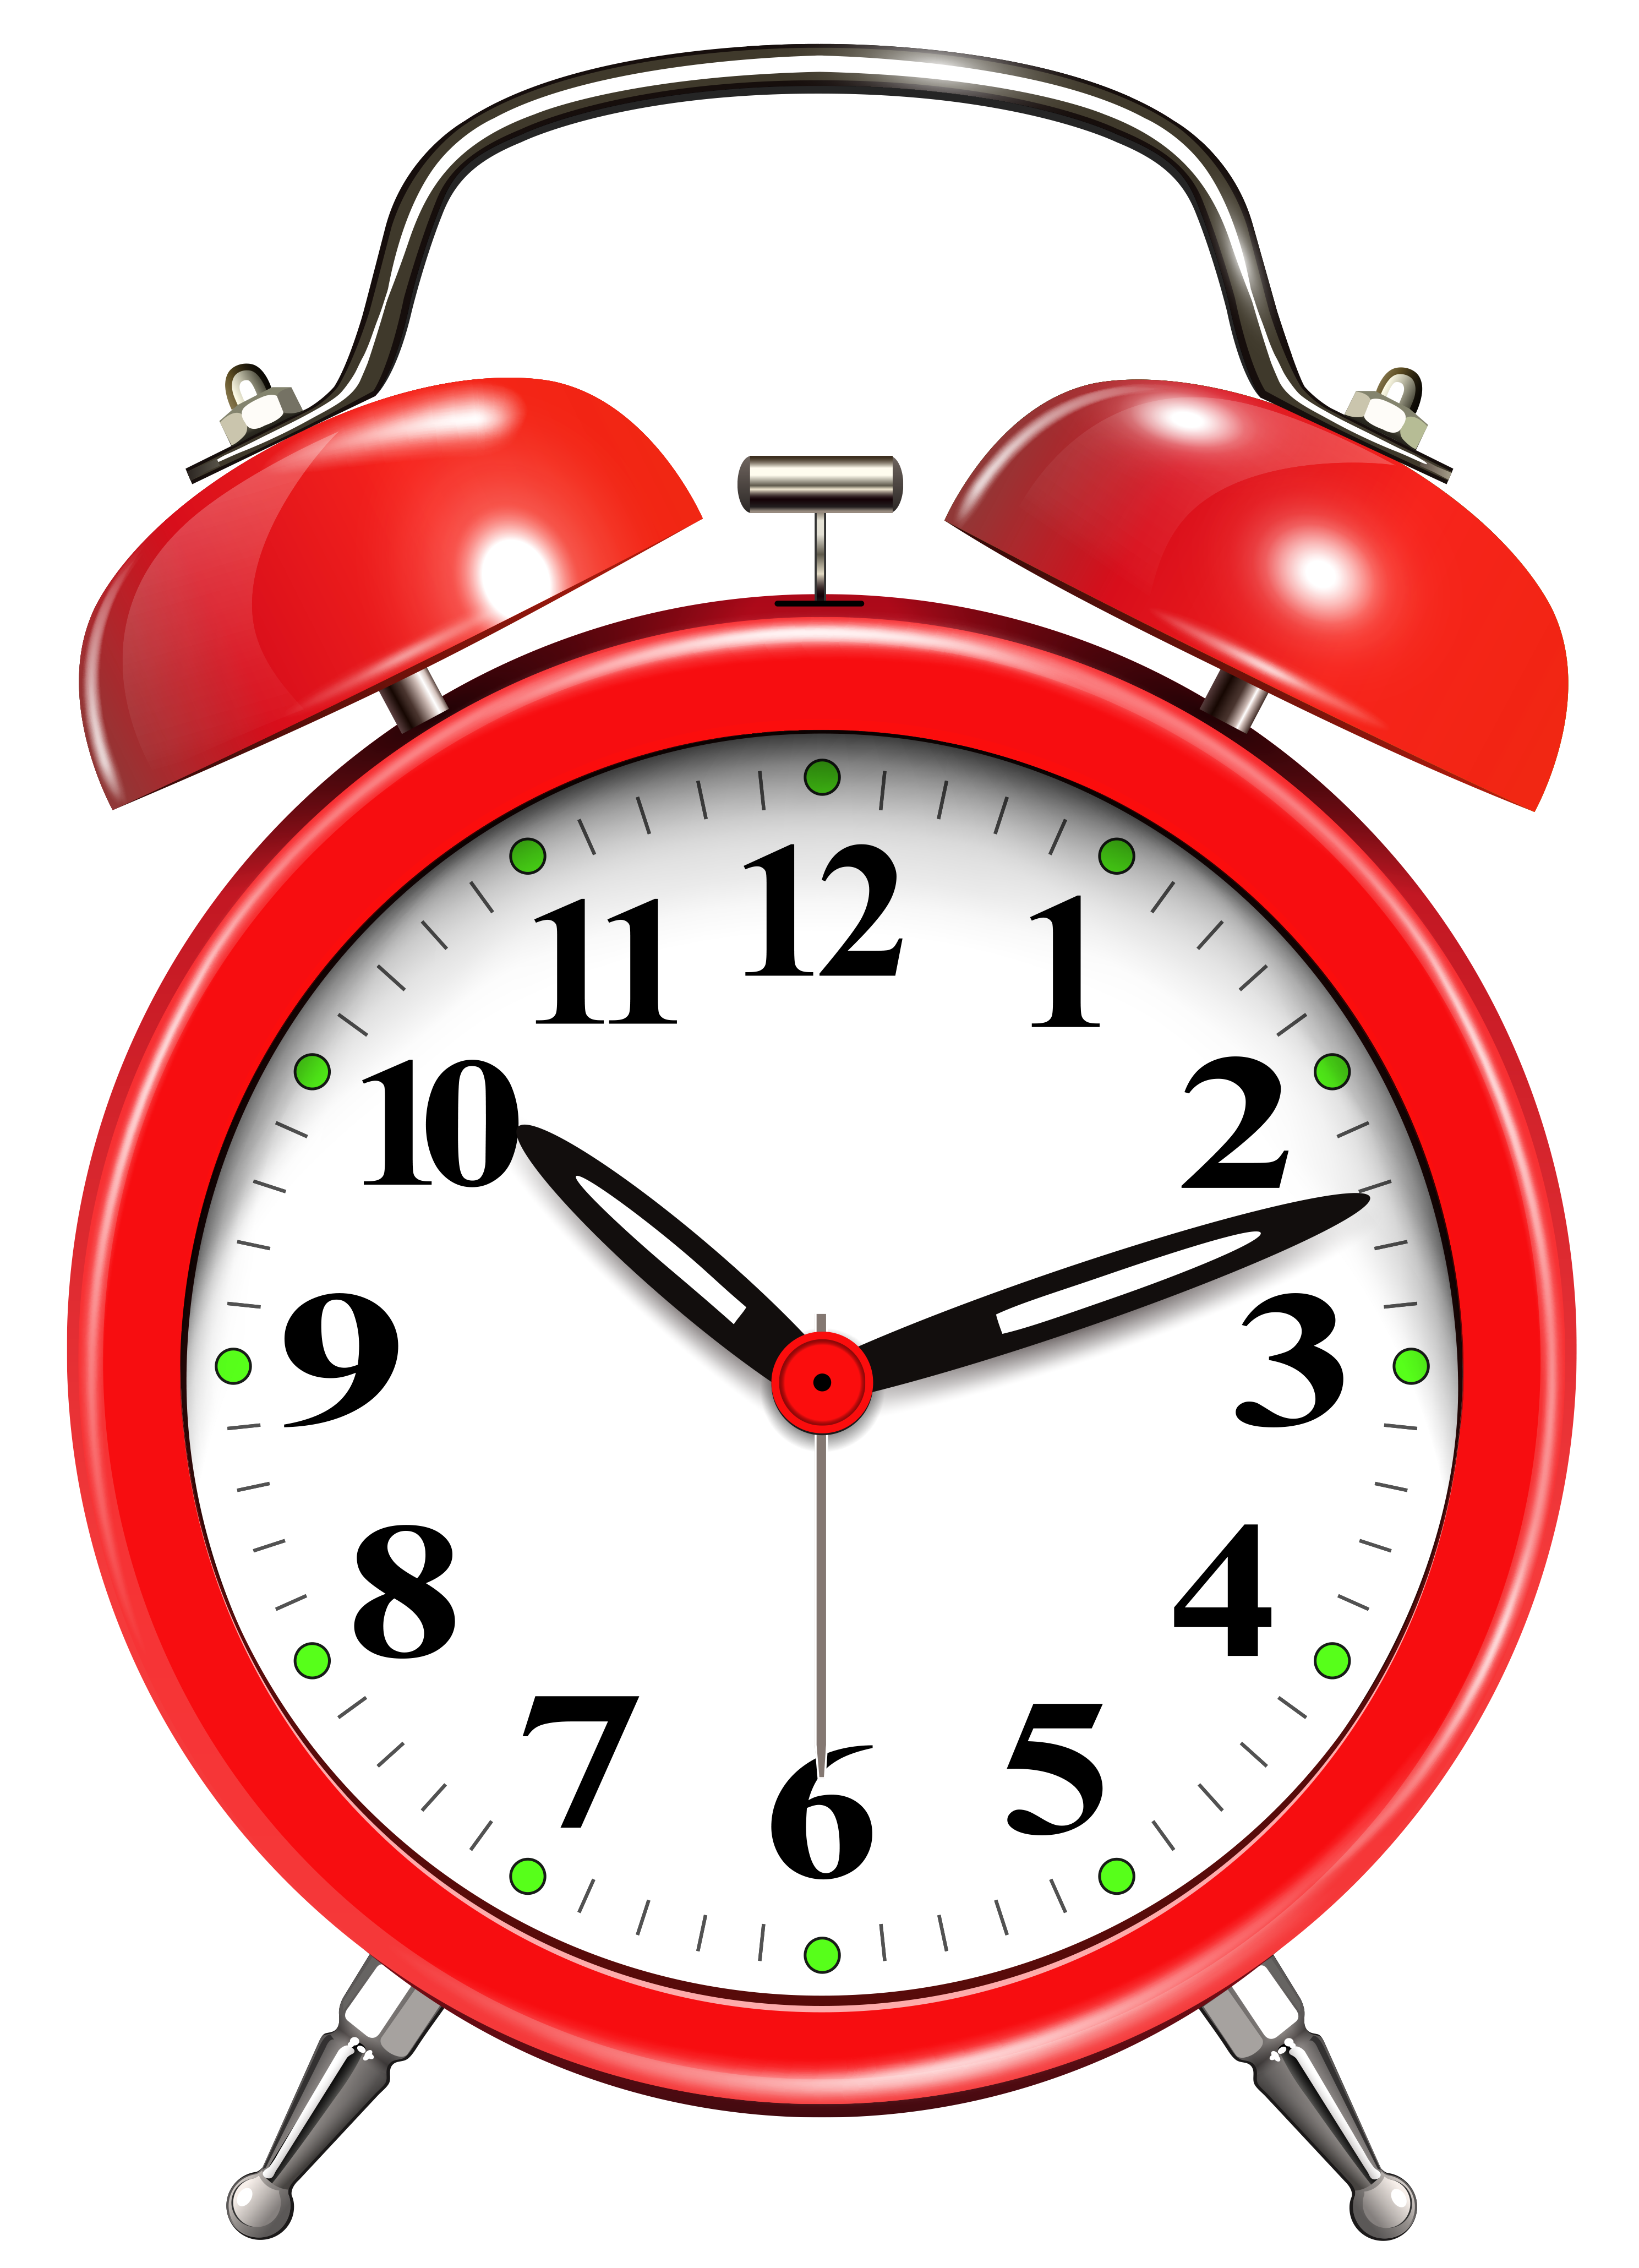 Alarm clock clipart 7 vector freeuse library Alarm Clock Red PNG Clip Art - Best WEB Clipart vector freeuse library